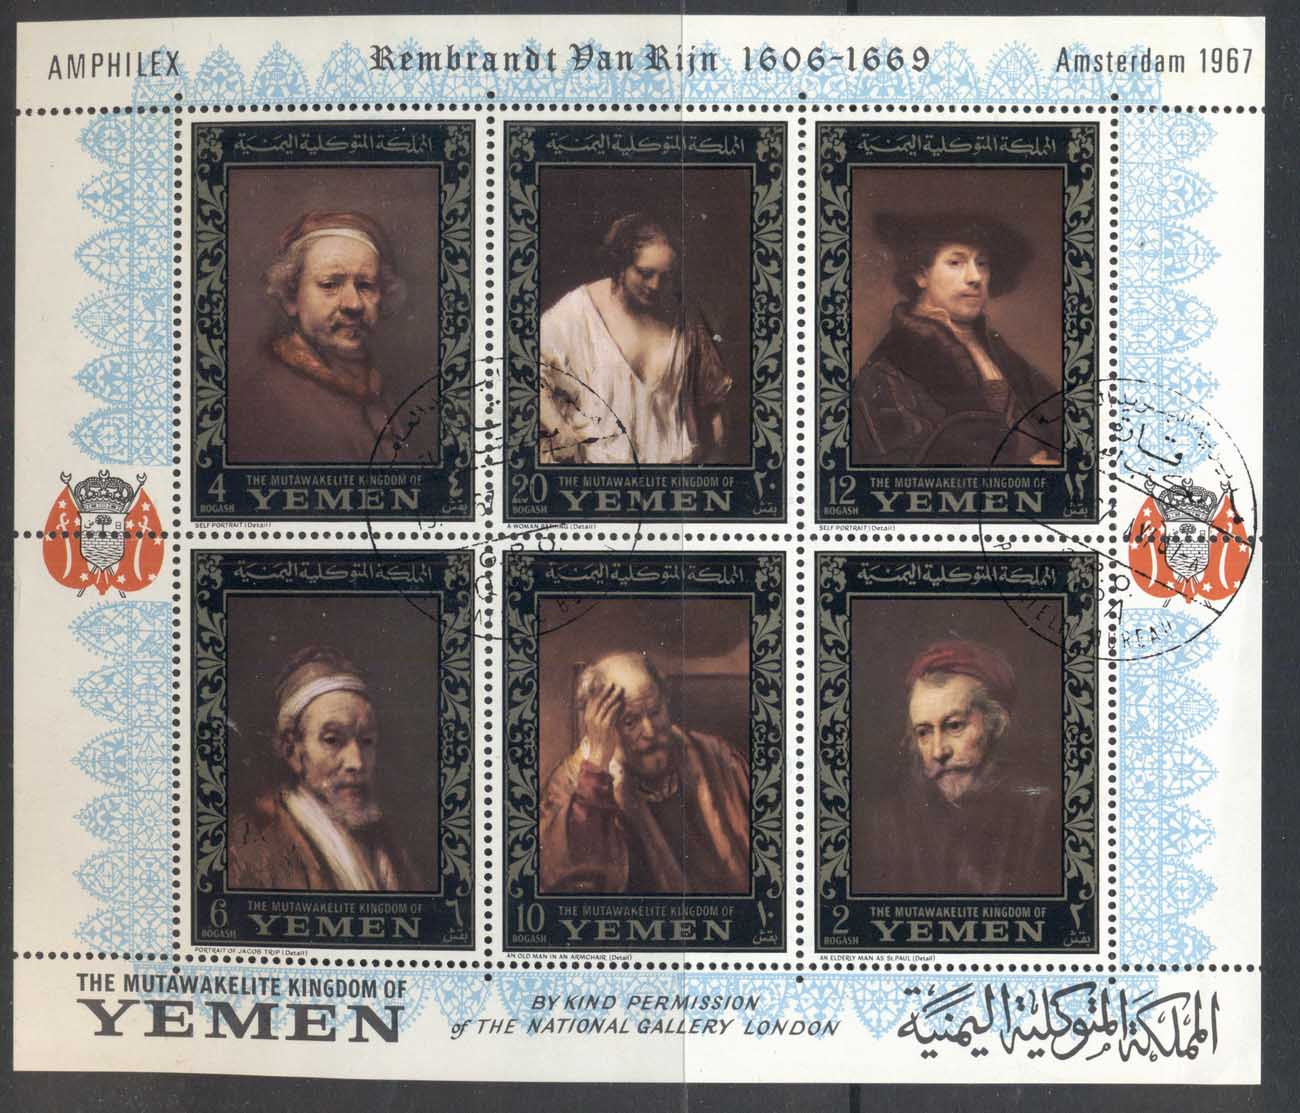 Yemen Kingdom 1967 Mi#MSA37A Rembrandt Paintings, Amphilex Stamp Ex, gold borders MS CTO